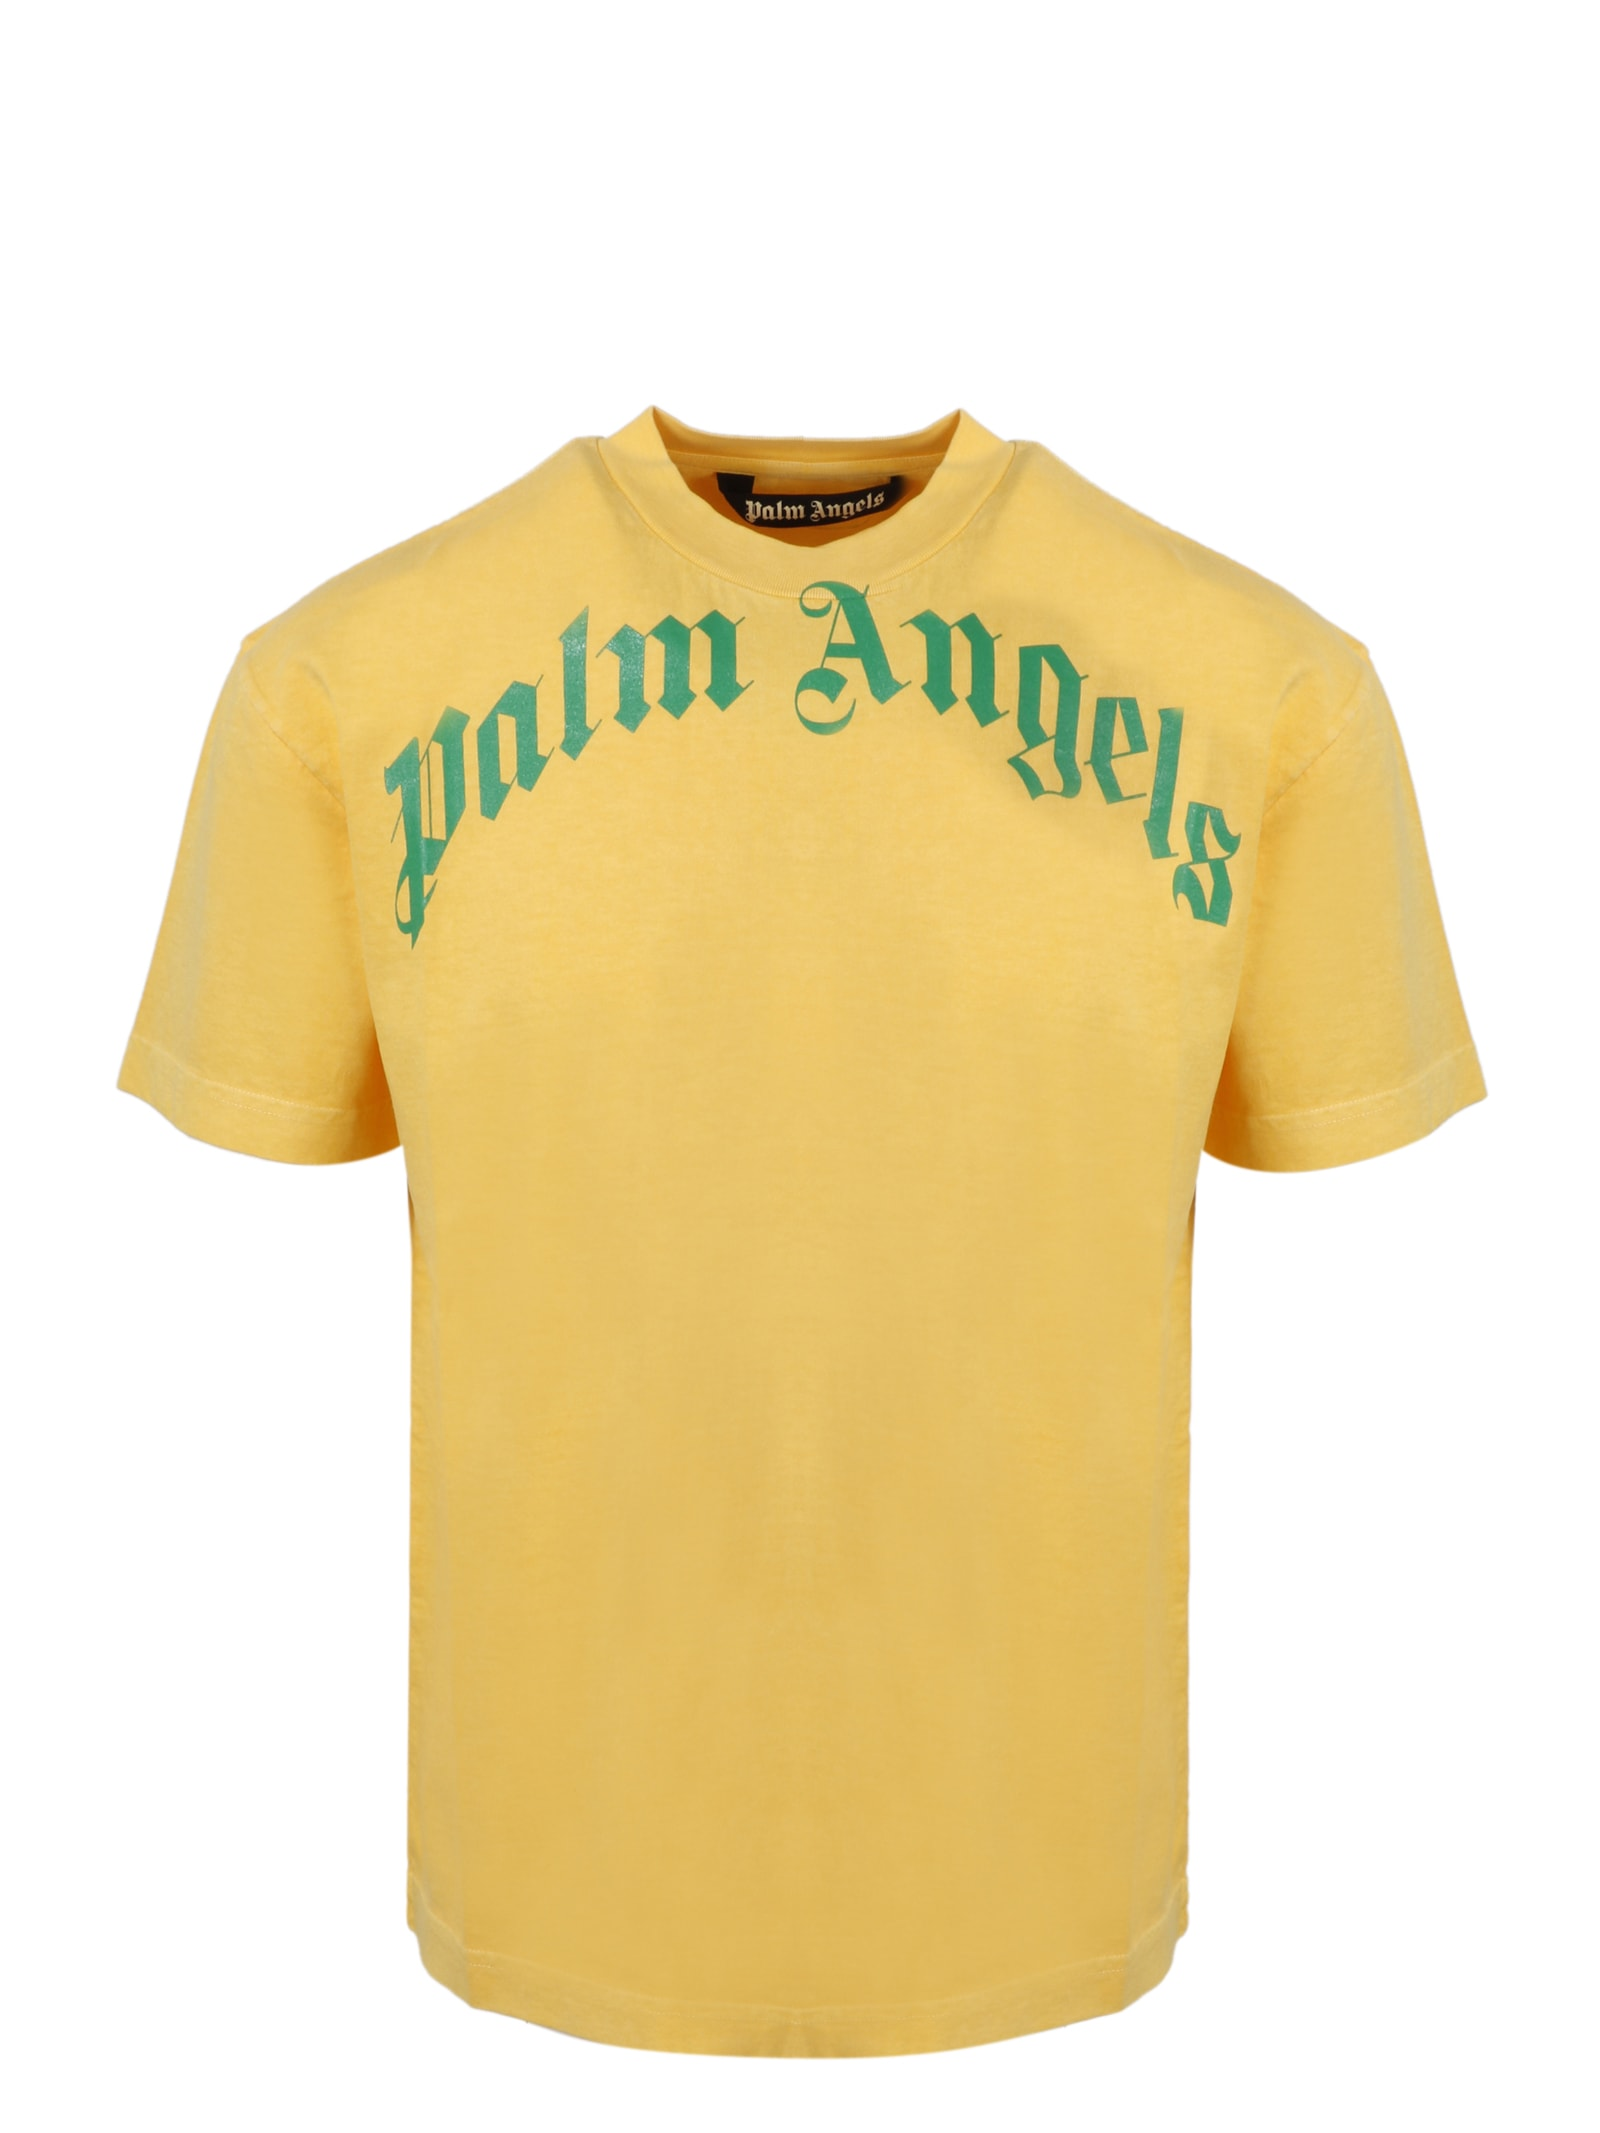 Palm Angels CURVED LOGO T-SHIRT